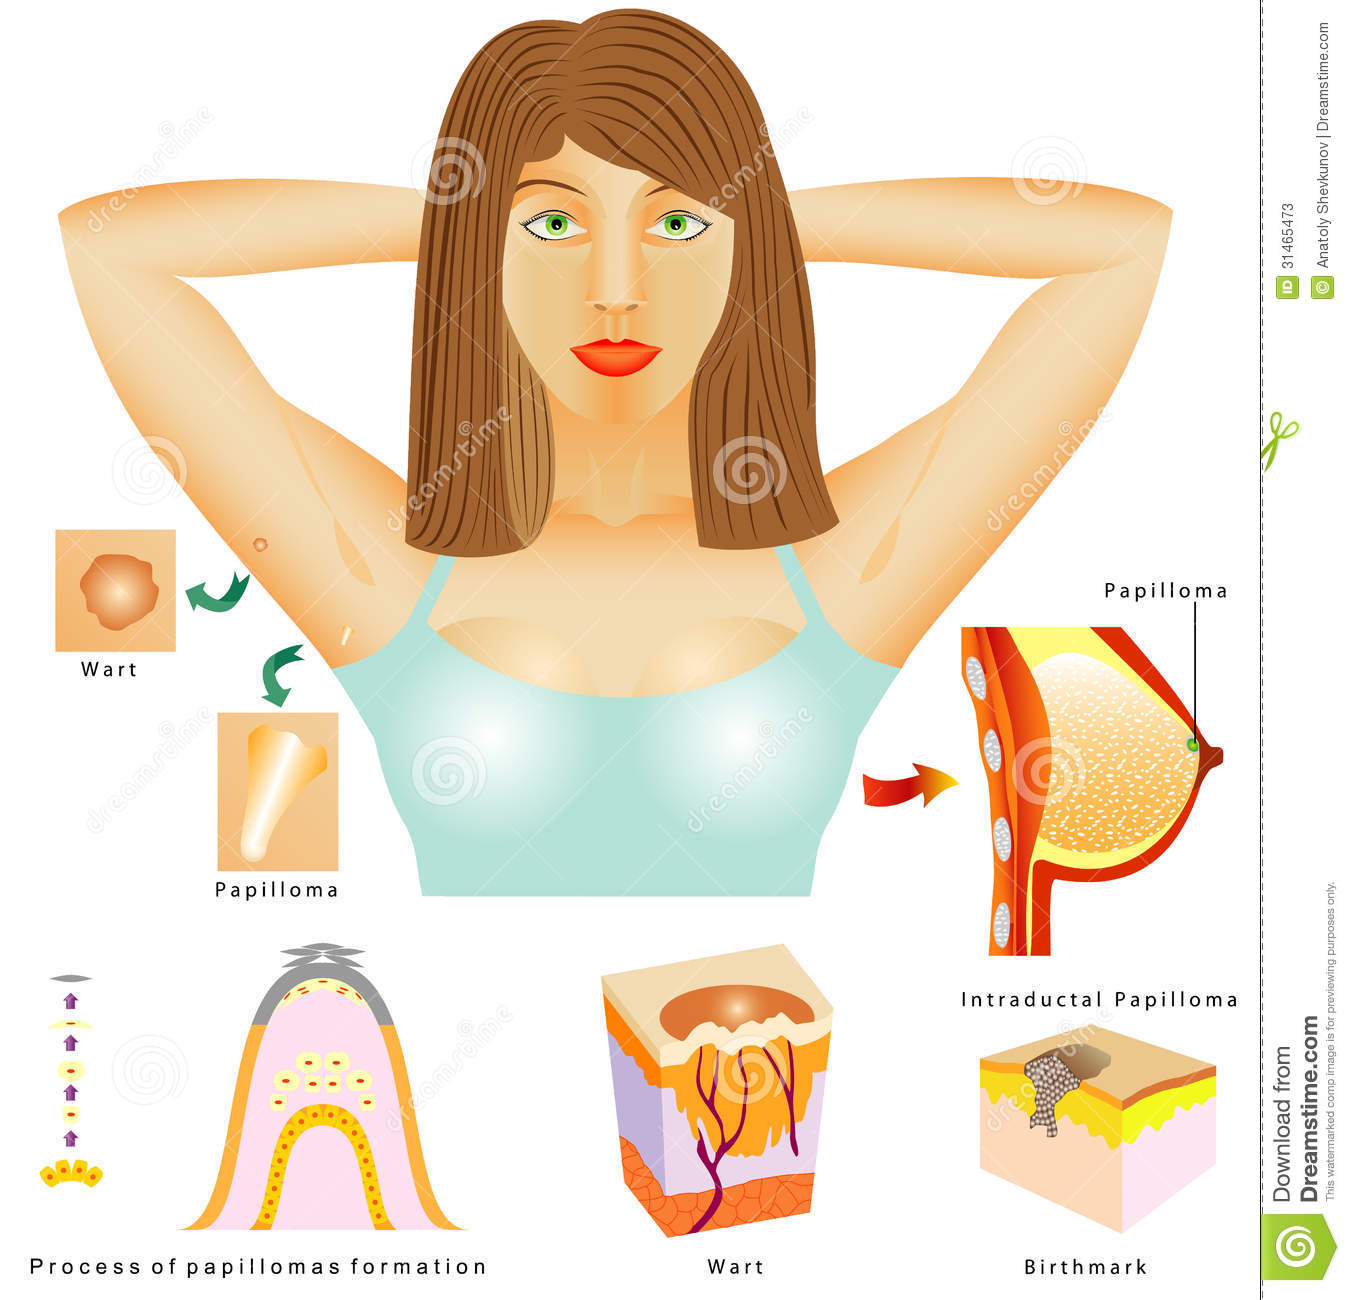 Stock Photos Papilloma Human Virus Hpv Hpv Causative Agent Warts Birthmarks Skin Wart Intraductal Image31465473 besides Acne Vulgaris 5279 together with Laser Removal moreover Endothelium additionally Circulation Of Blood Vector 97672. on circulatory system process